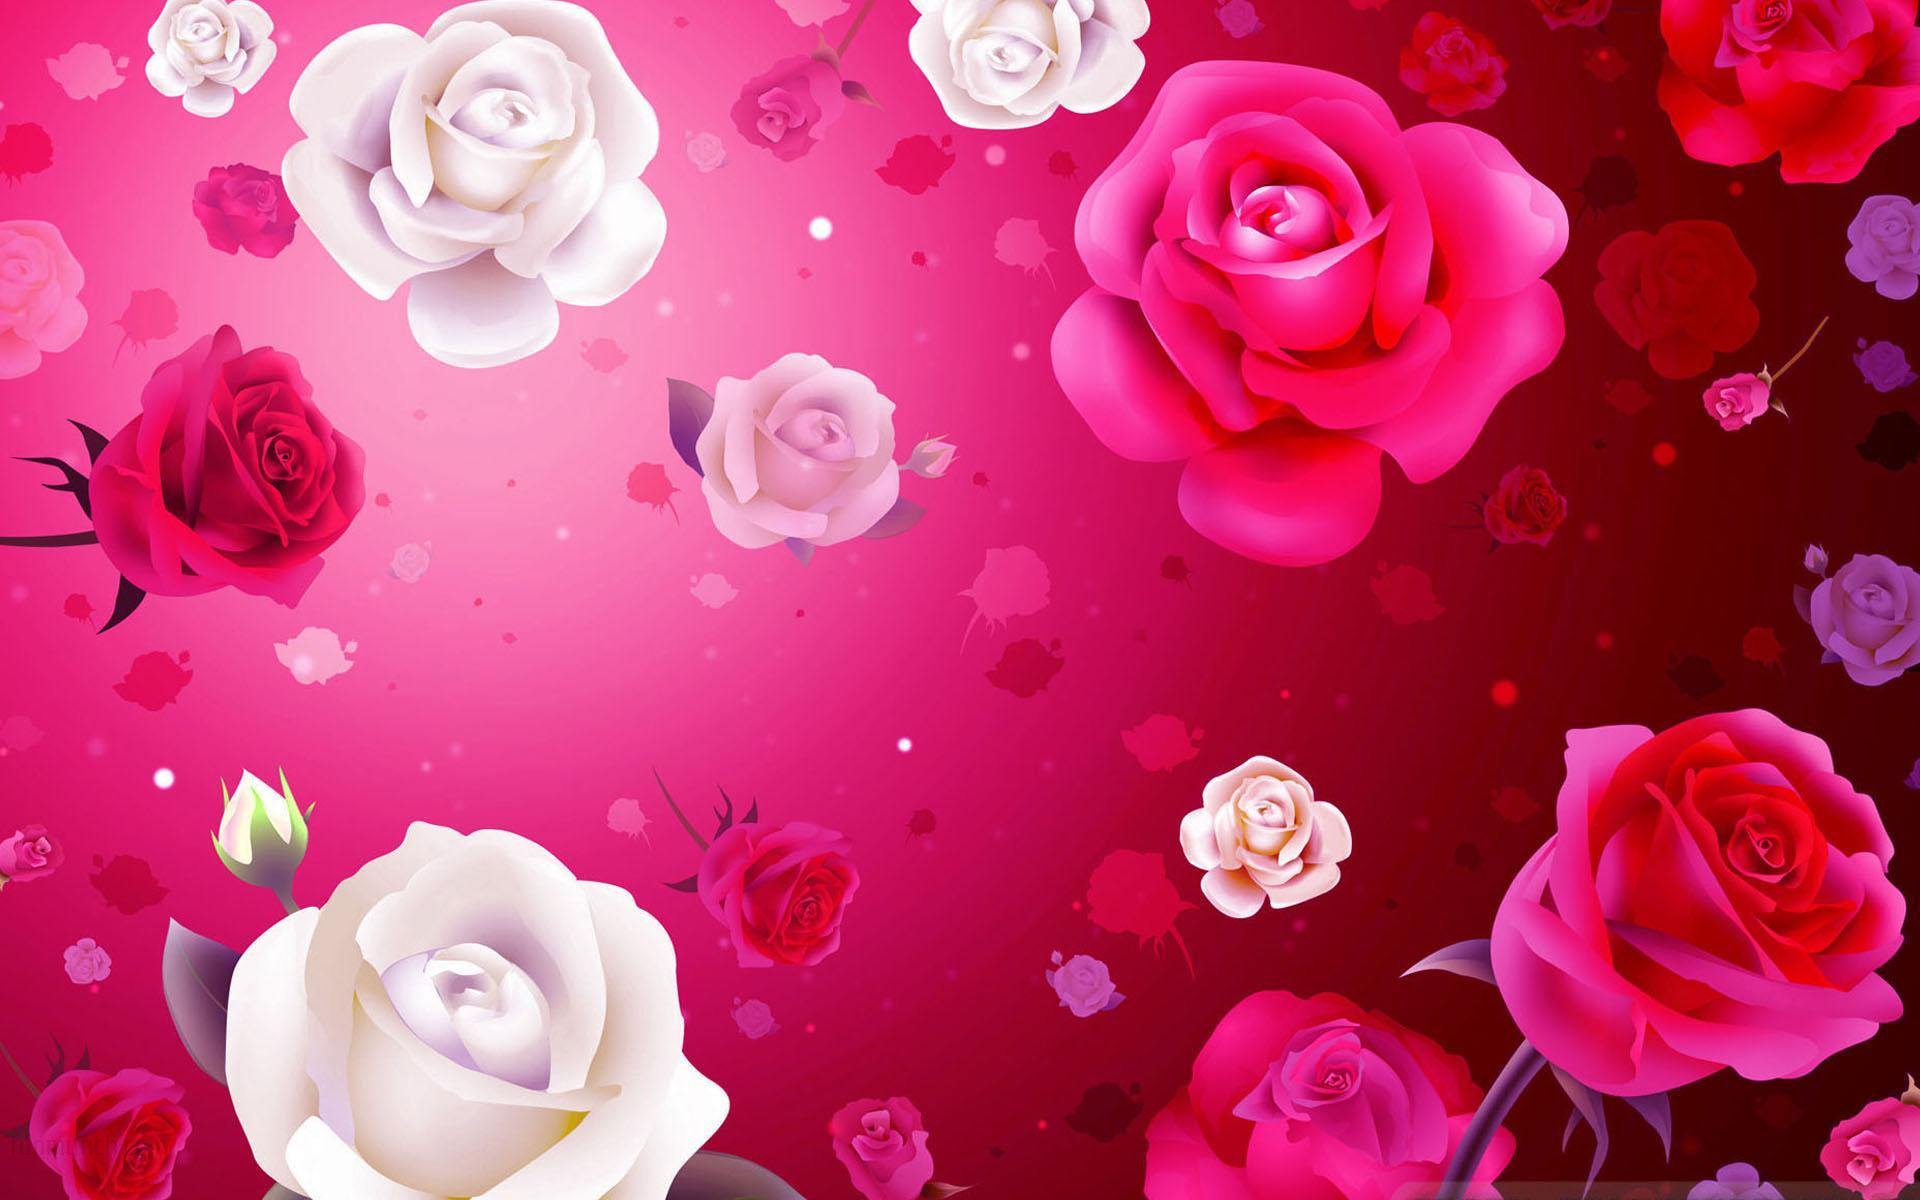 Valentines Day 2014 Desktop Background   Wallpaper High 1920x1200